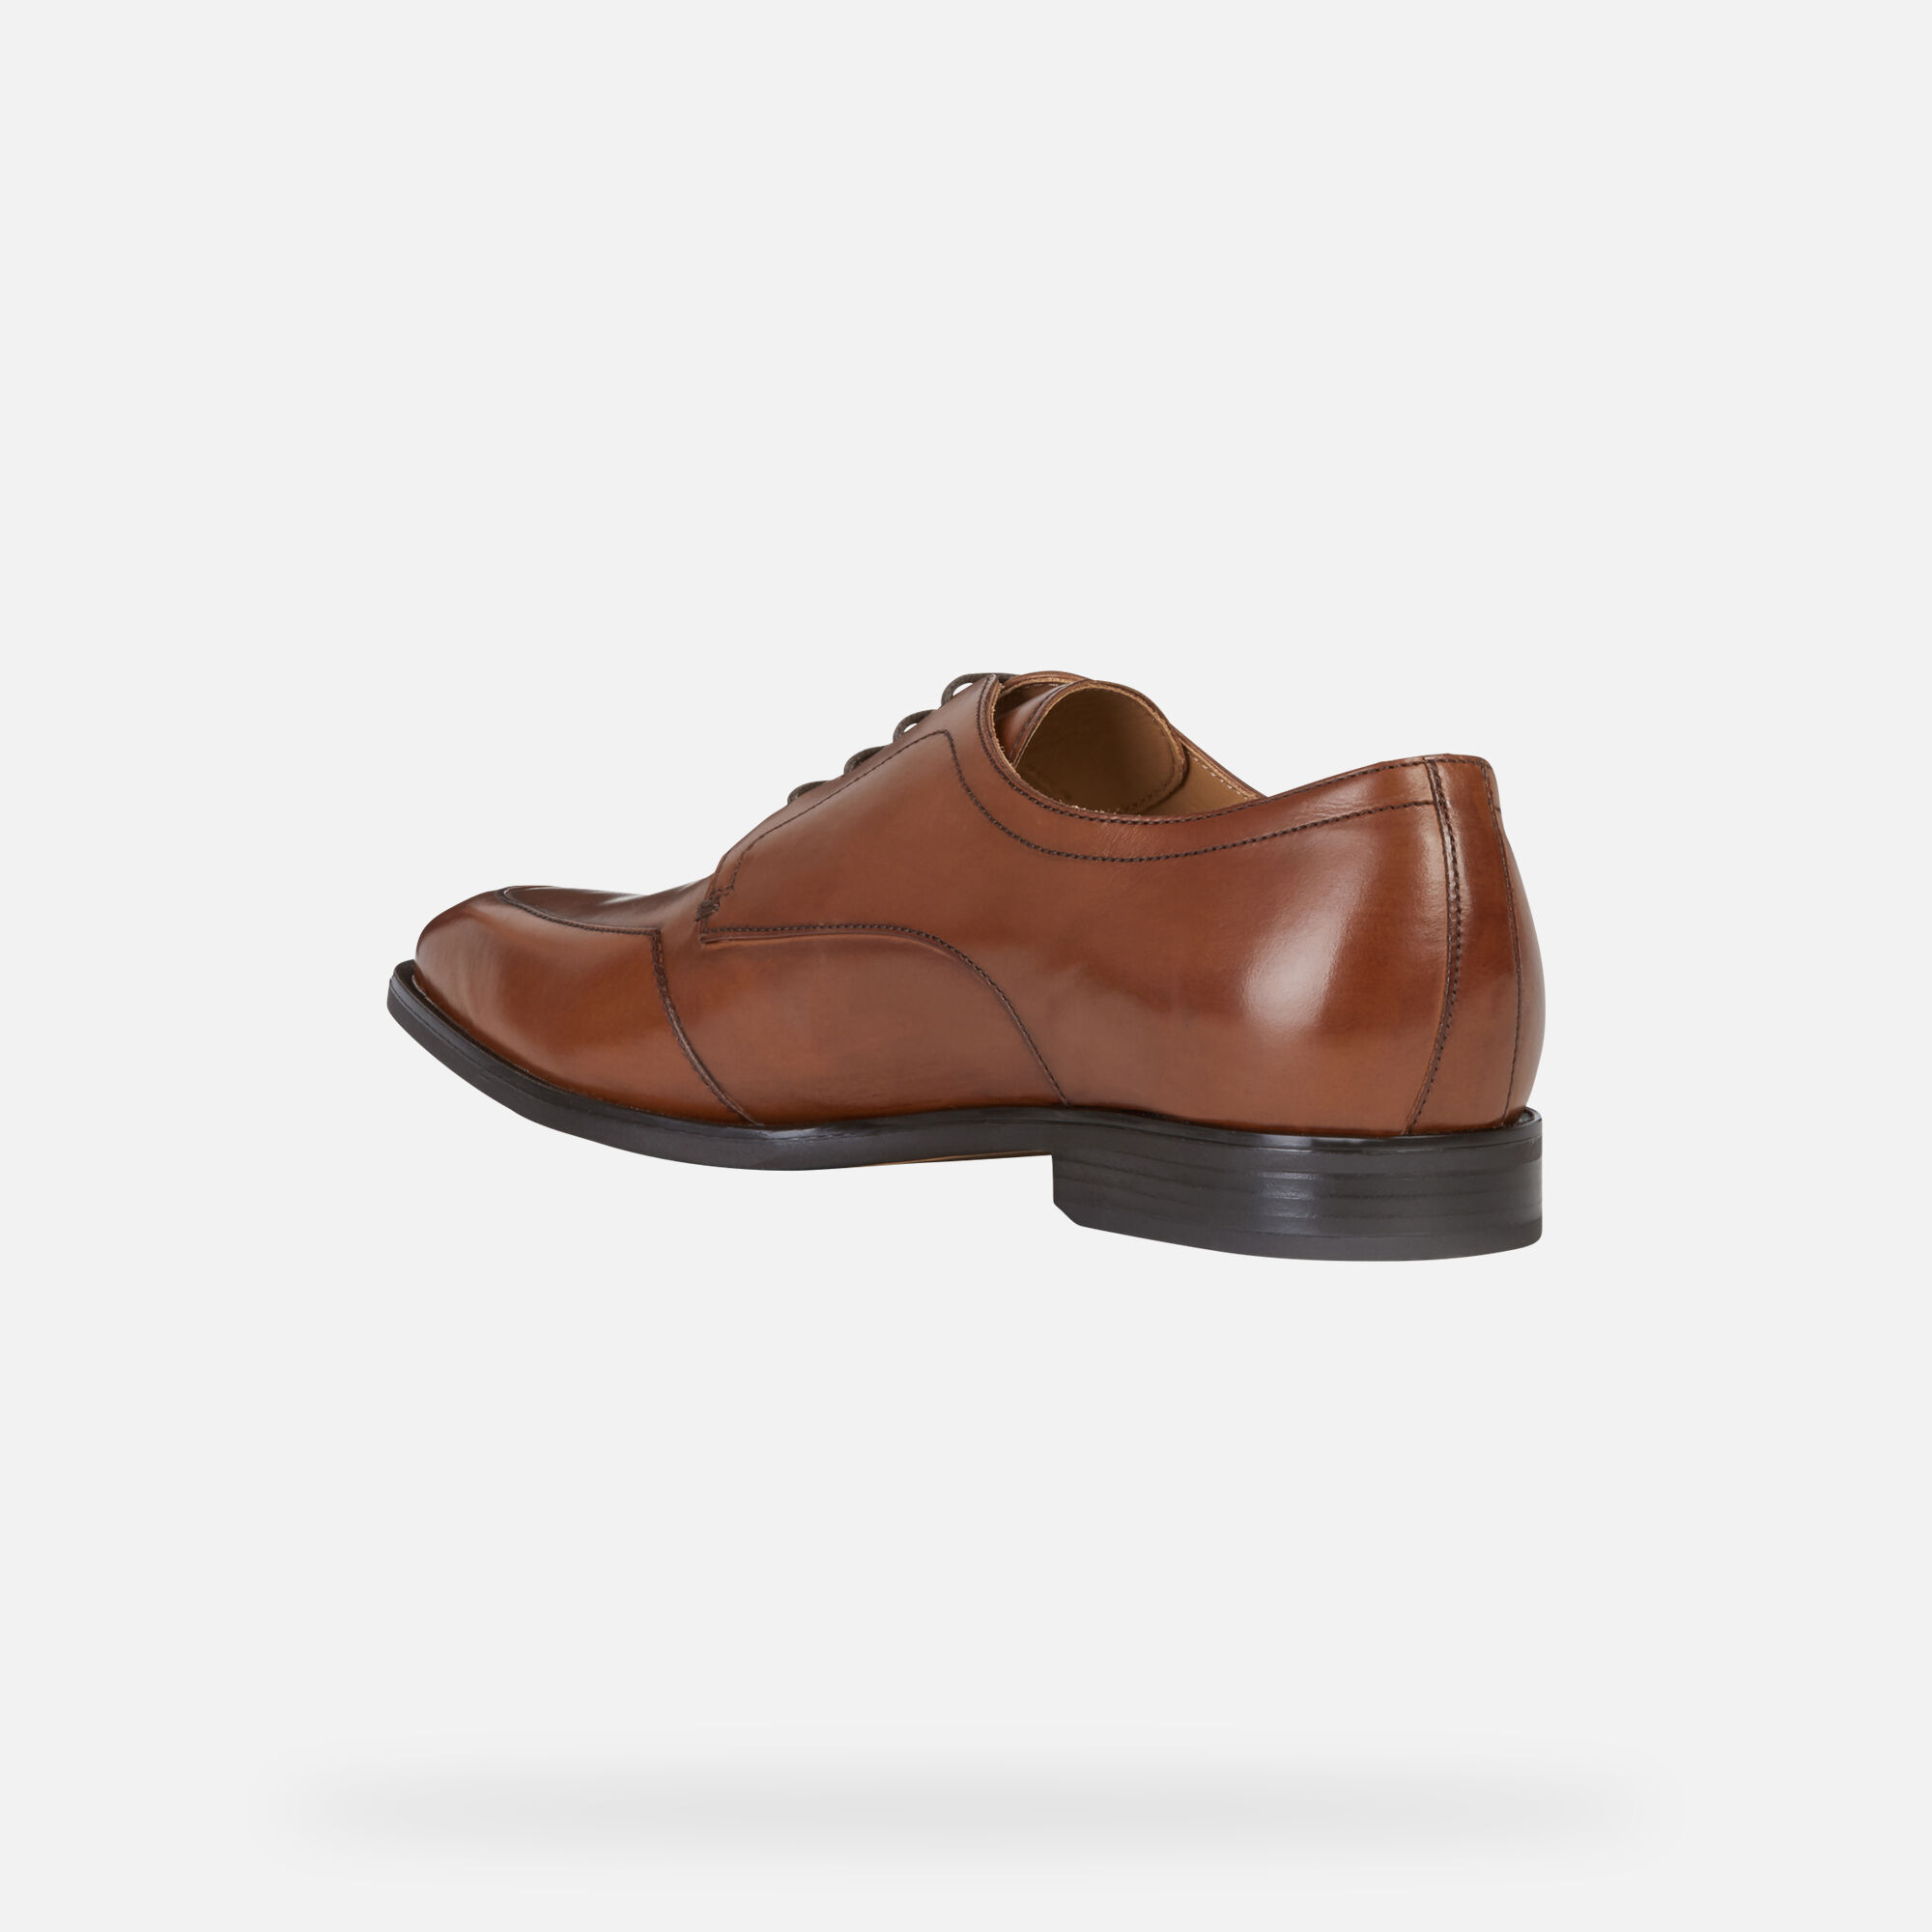 Chaussures NEW LIFE Automne CognacGeox Geox Hiver Homme 5Lj43AqR